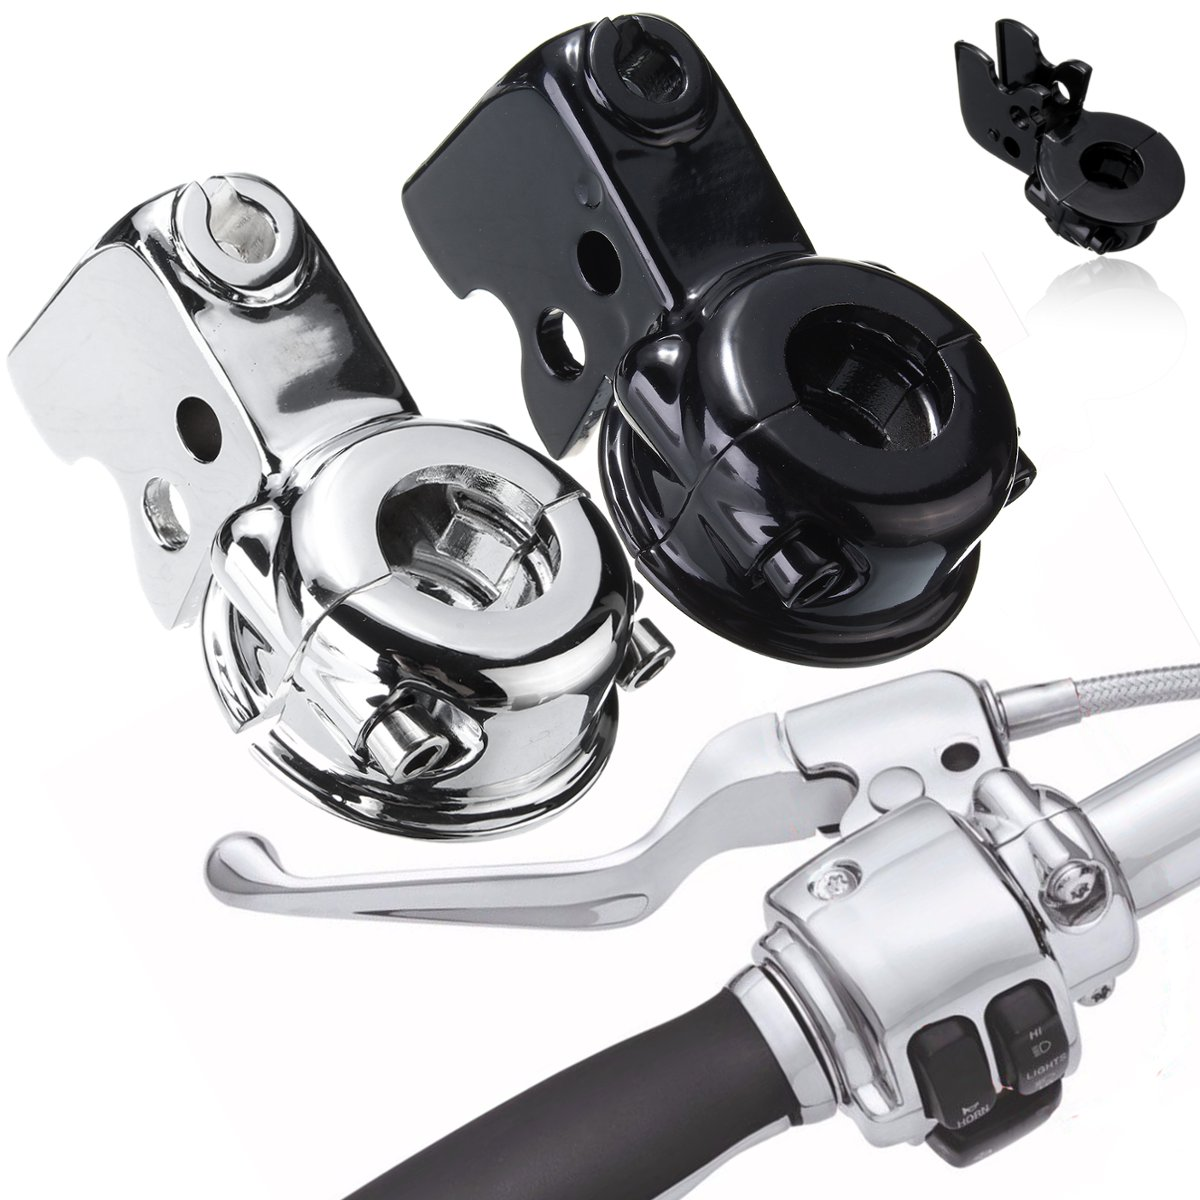 Motorcycle Clutch Lever Mount Bracket Perch For Harley Touring Glide Softail Dyna Sportster 883 Chrome Black triclicks motorcycle black hand levers clutch brake lever handlebar for harley sportster 883 1200 softail dyna road king touring